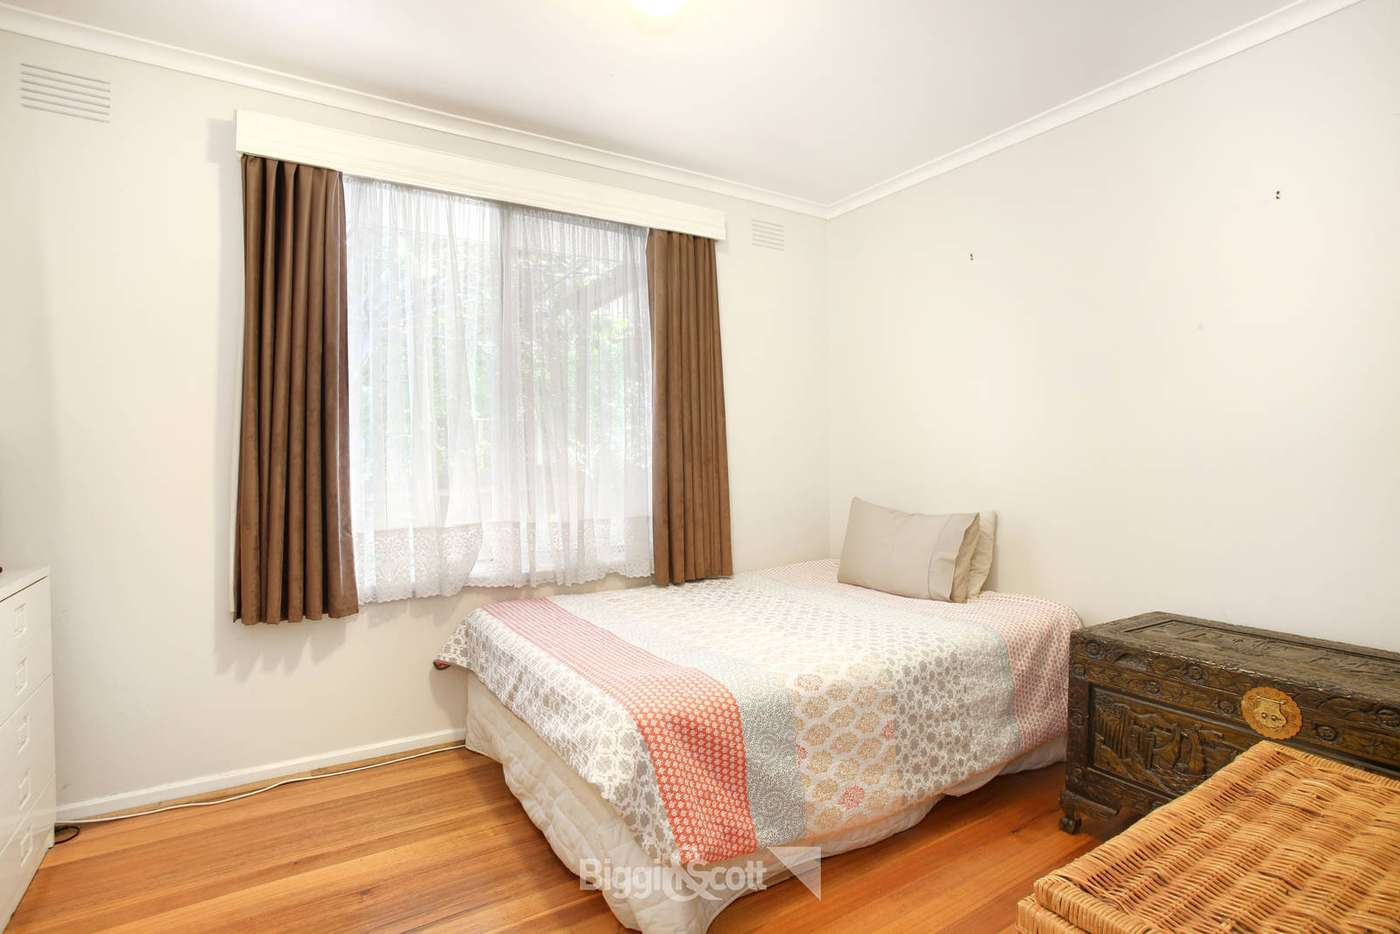 Seventh view of Homely house listing, 33 Silvertop Crescent, Frankston North VIC 3200